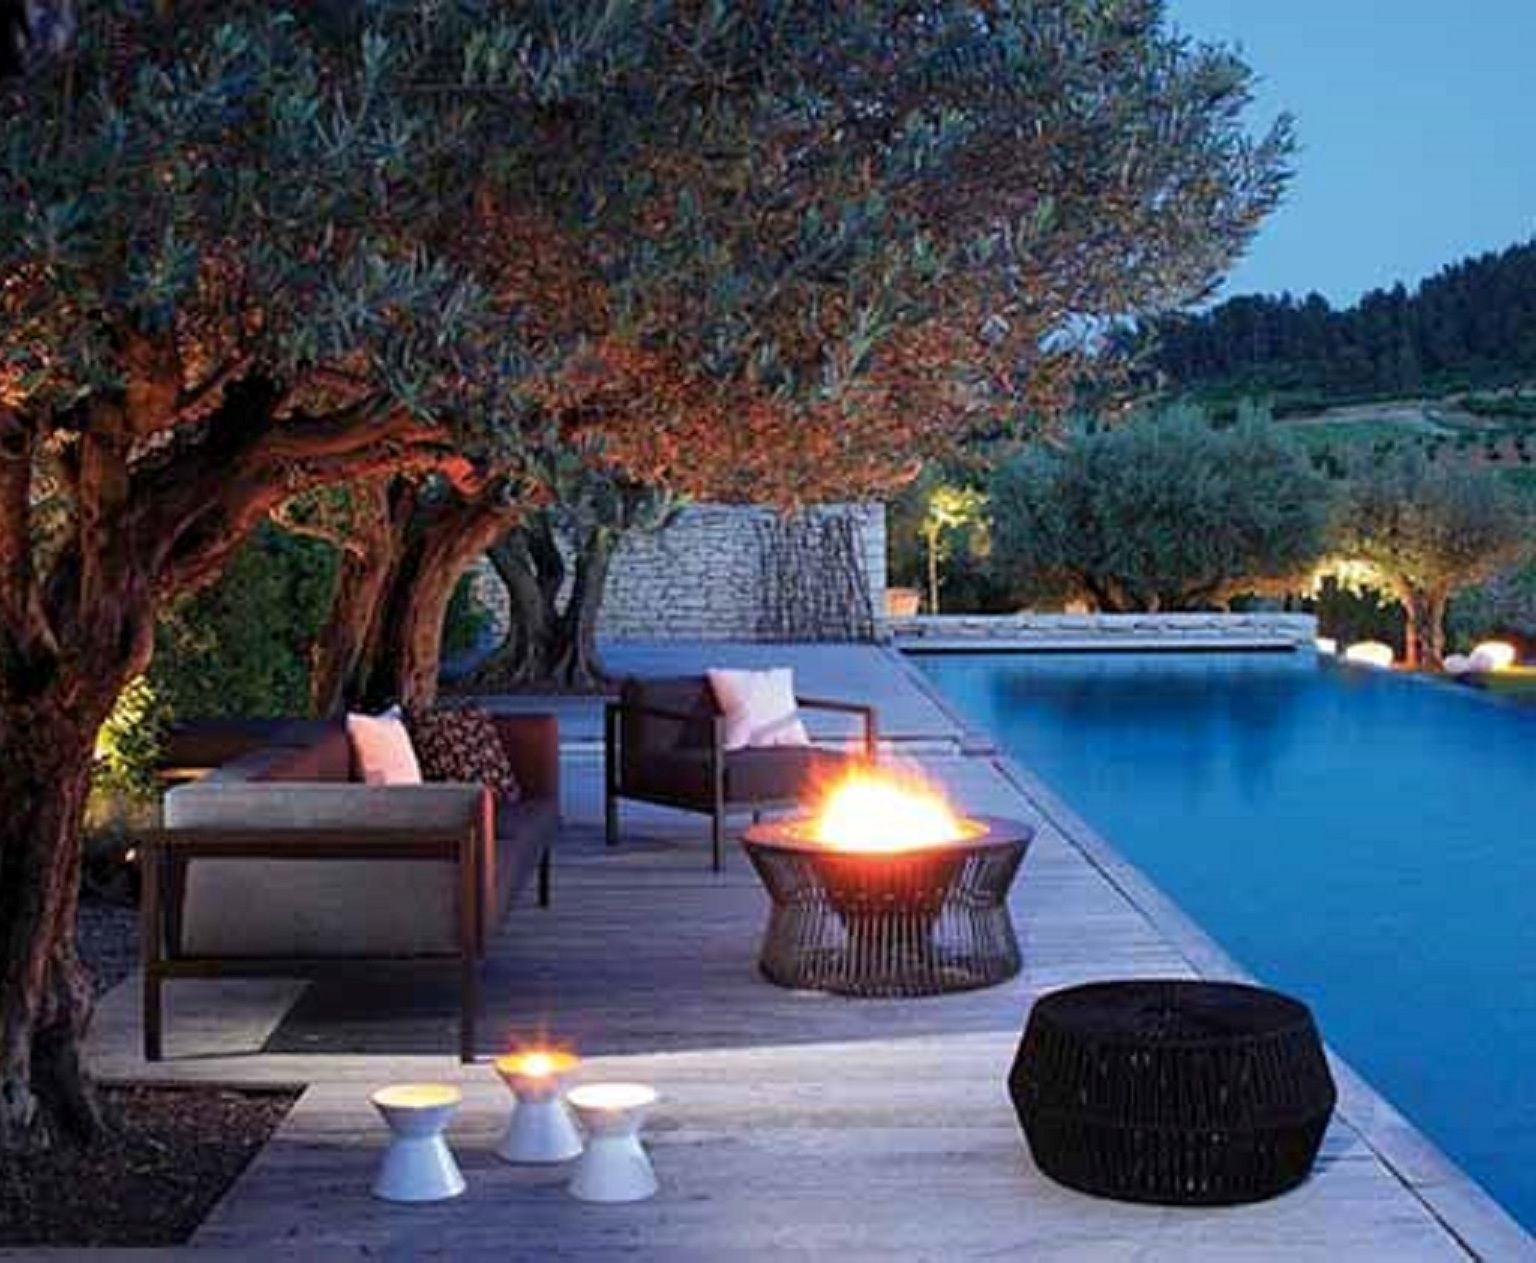 Romantic Pool And Patio Romance Set In Place Pinterest